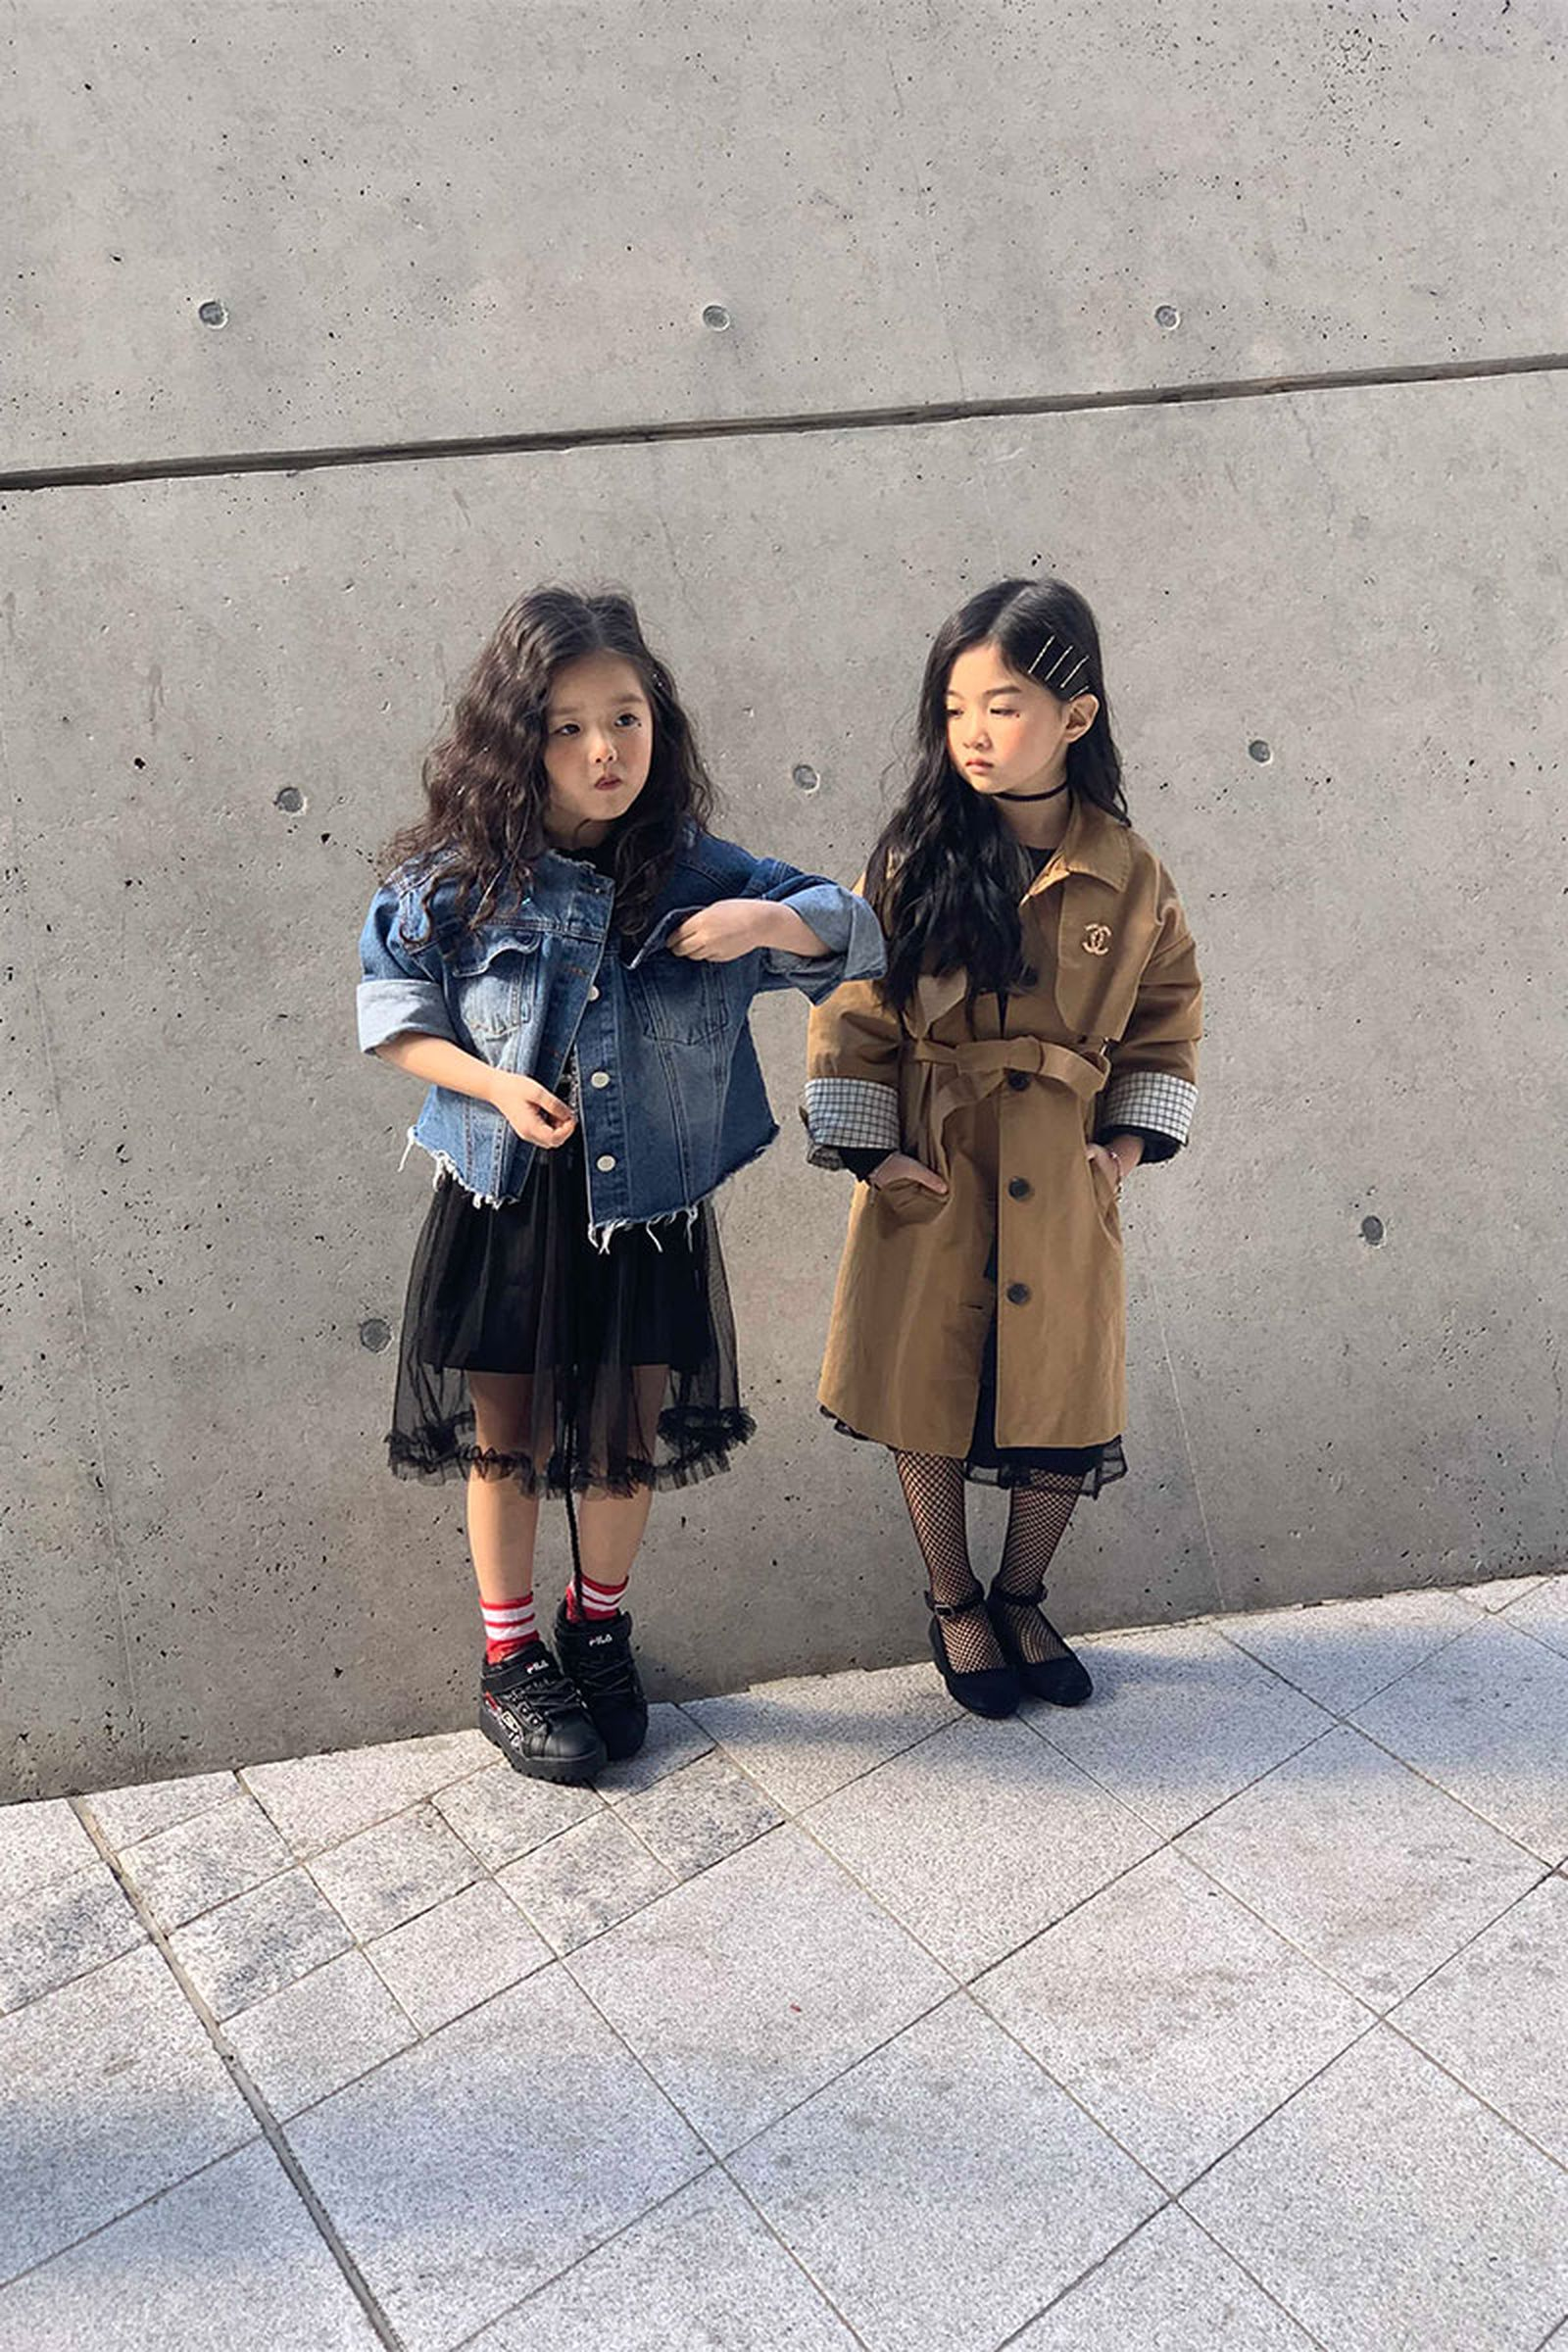 The Best Dressed at Seoul Fashion Week FW7 Are Kids